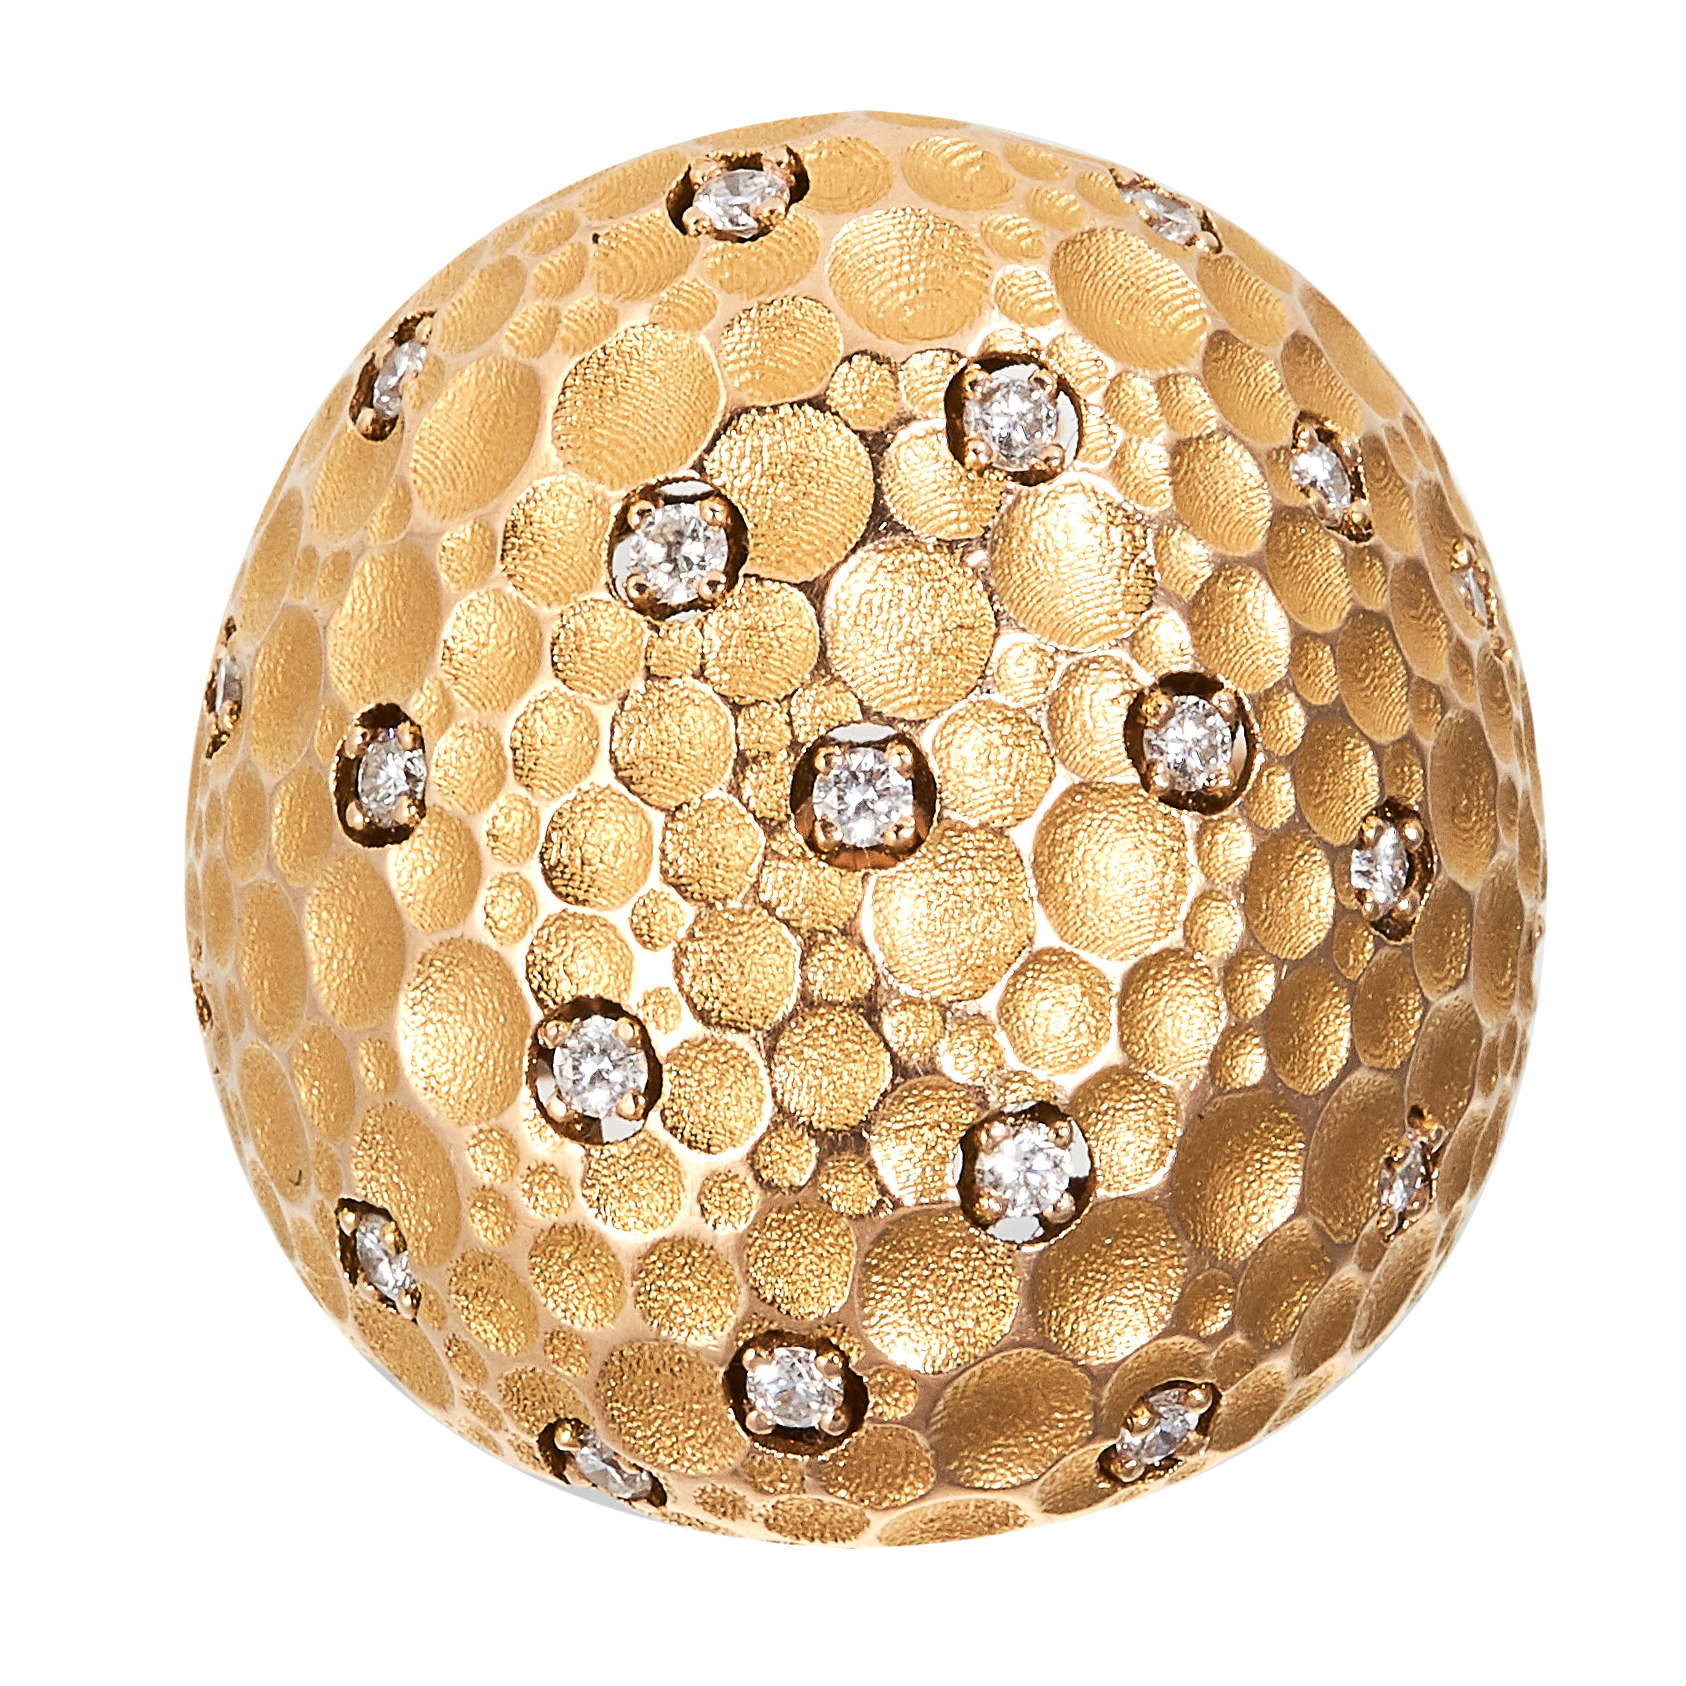 A DIAMOND BOMBE RING in 18ct yellow gold, comprising of a textured design jewelled with twenty one